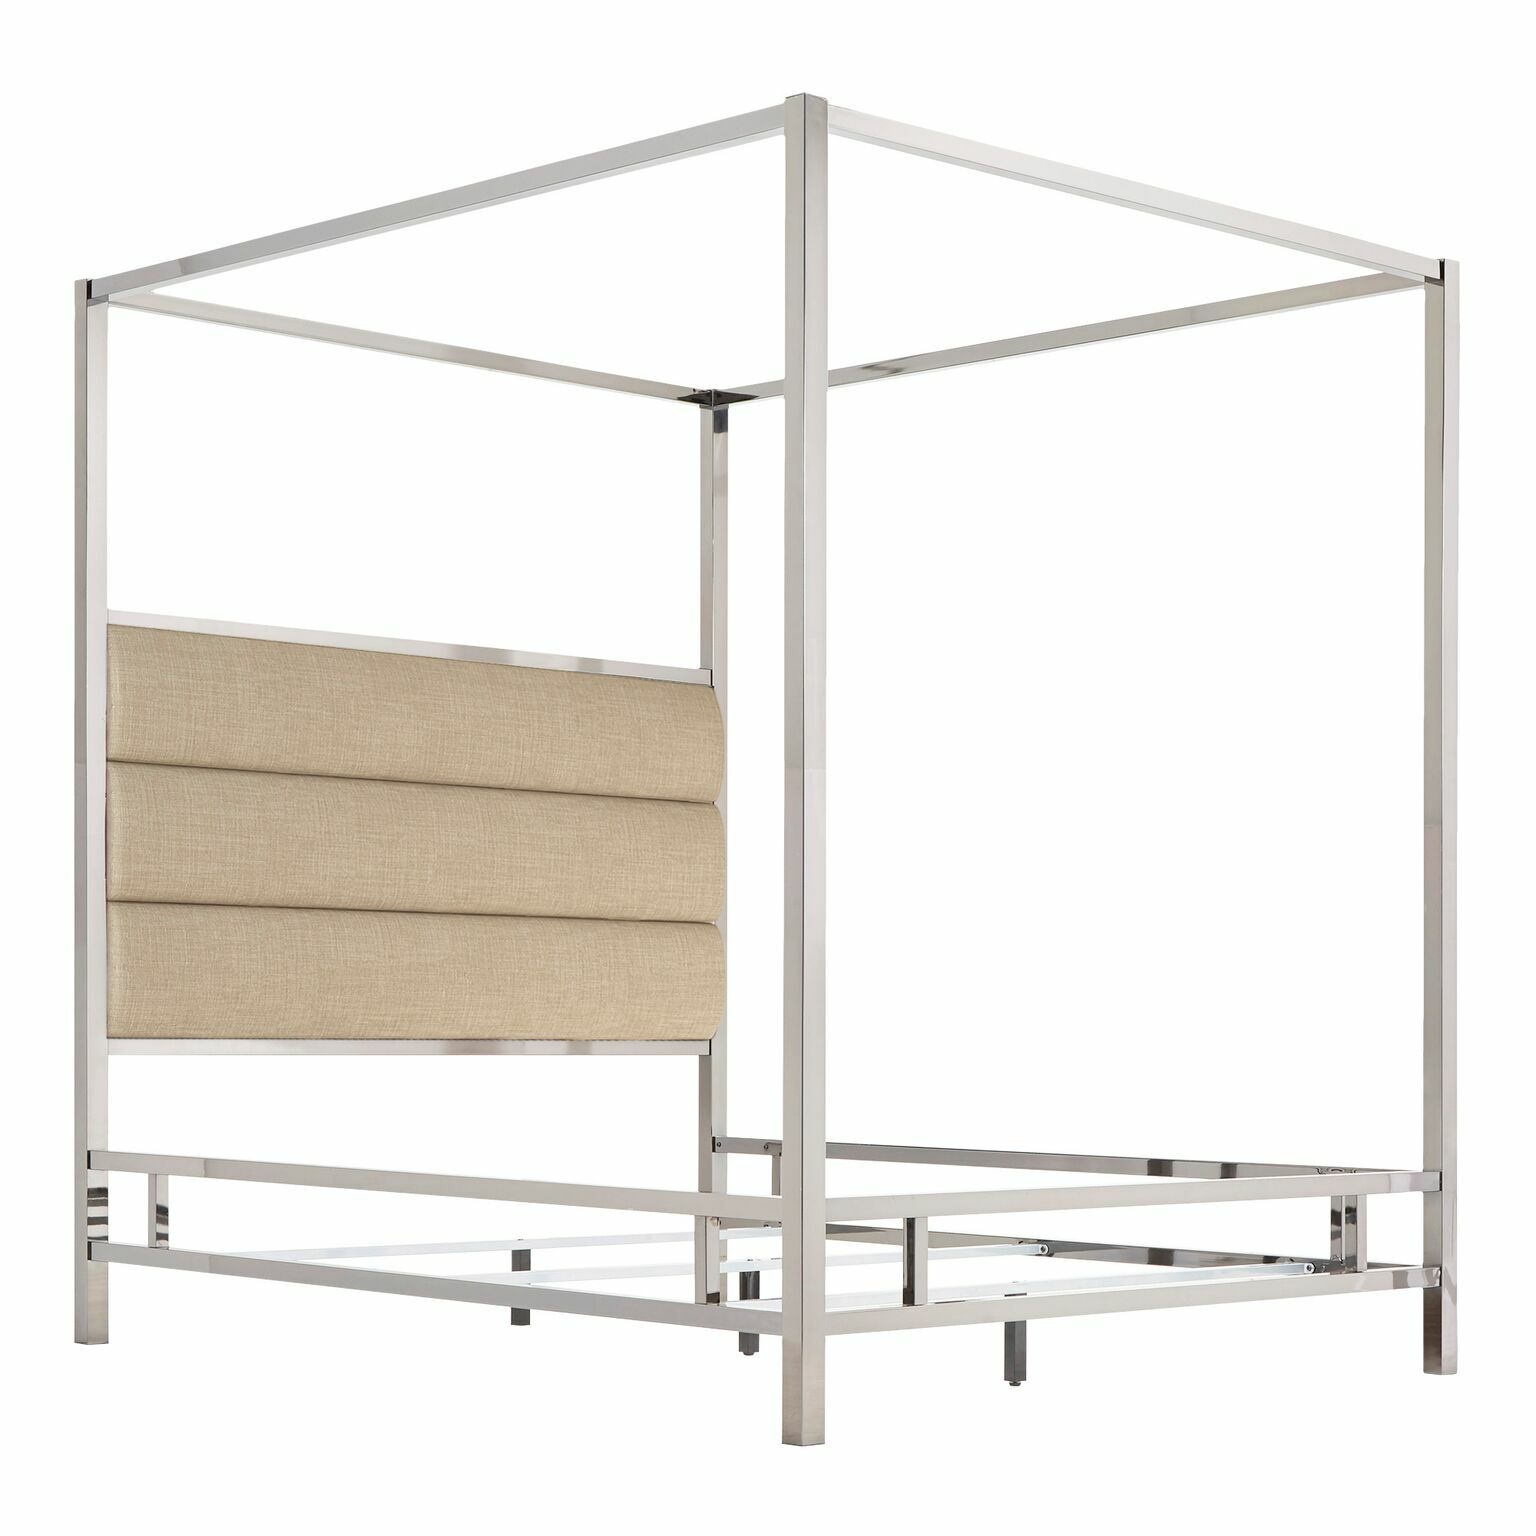 Wicklund Upholstered Canopy Bed Color (Frame/Headboard): Chrome Metal/Beige, Size: King